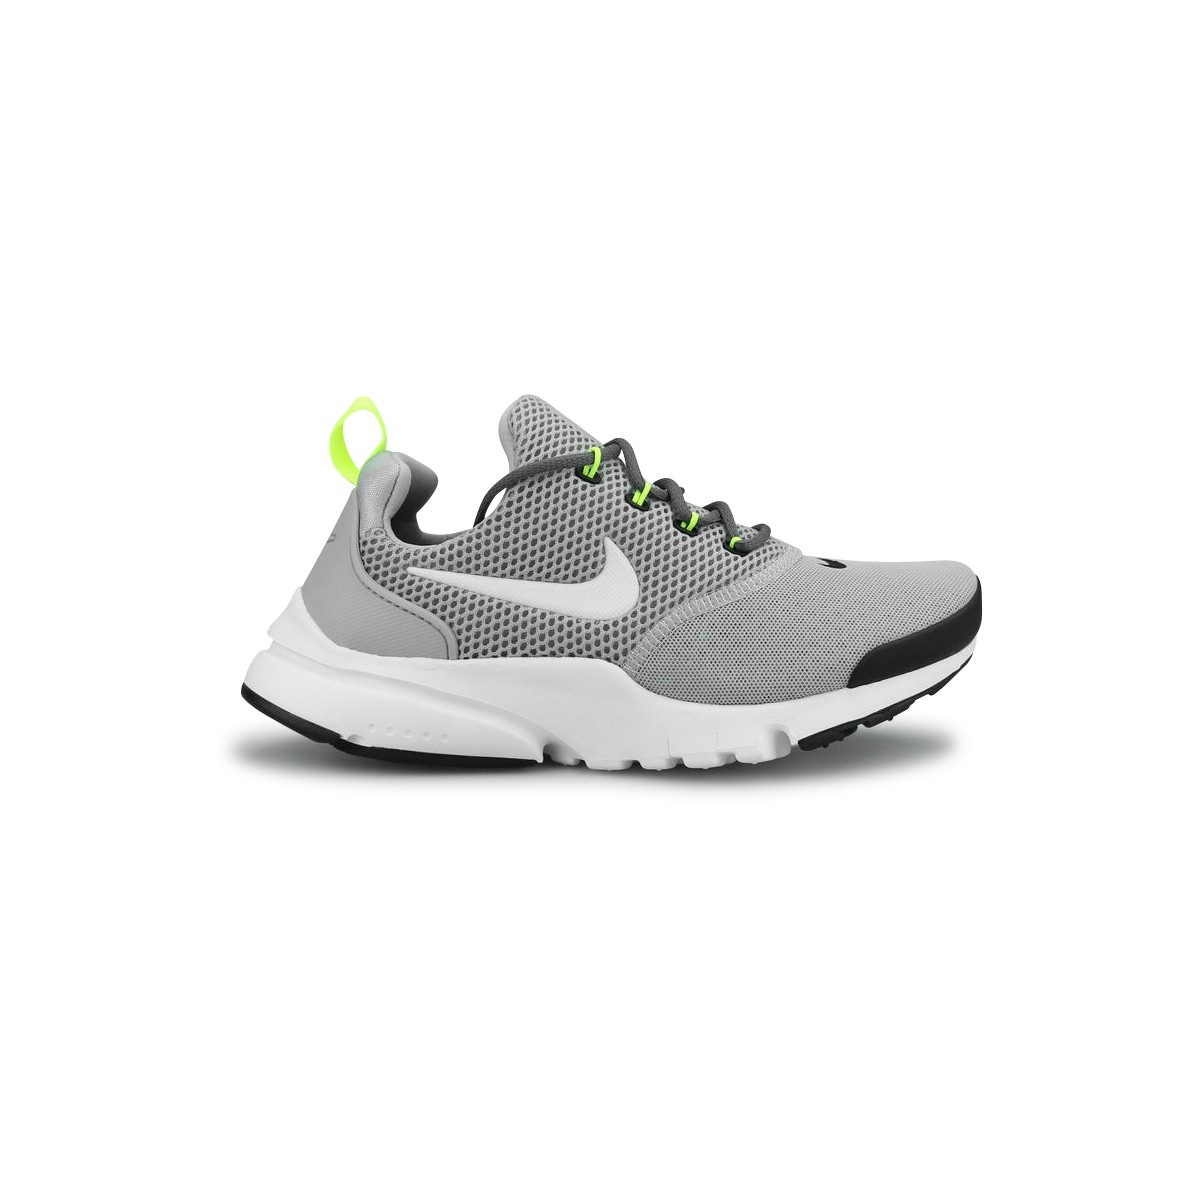 Gris Shoes 009Street Addict Fly Junior 913966 Nike Presto c5LqAS43Rj